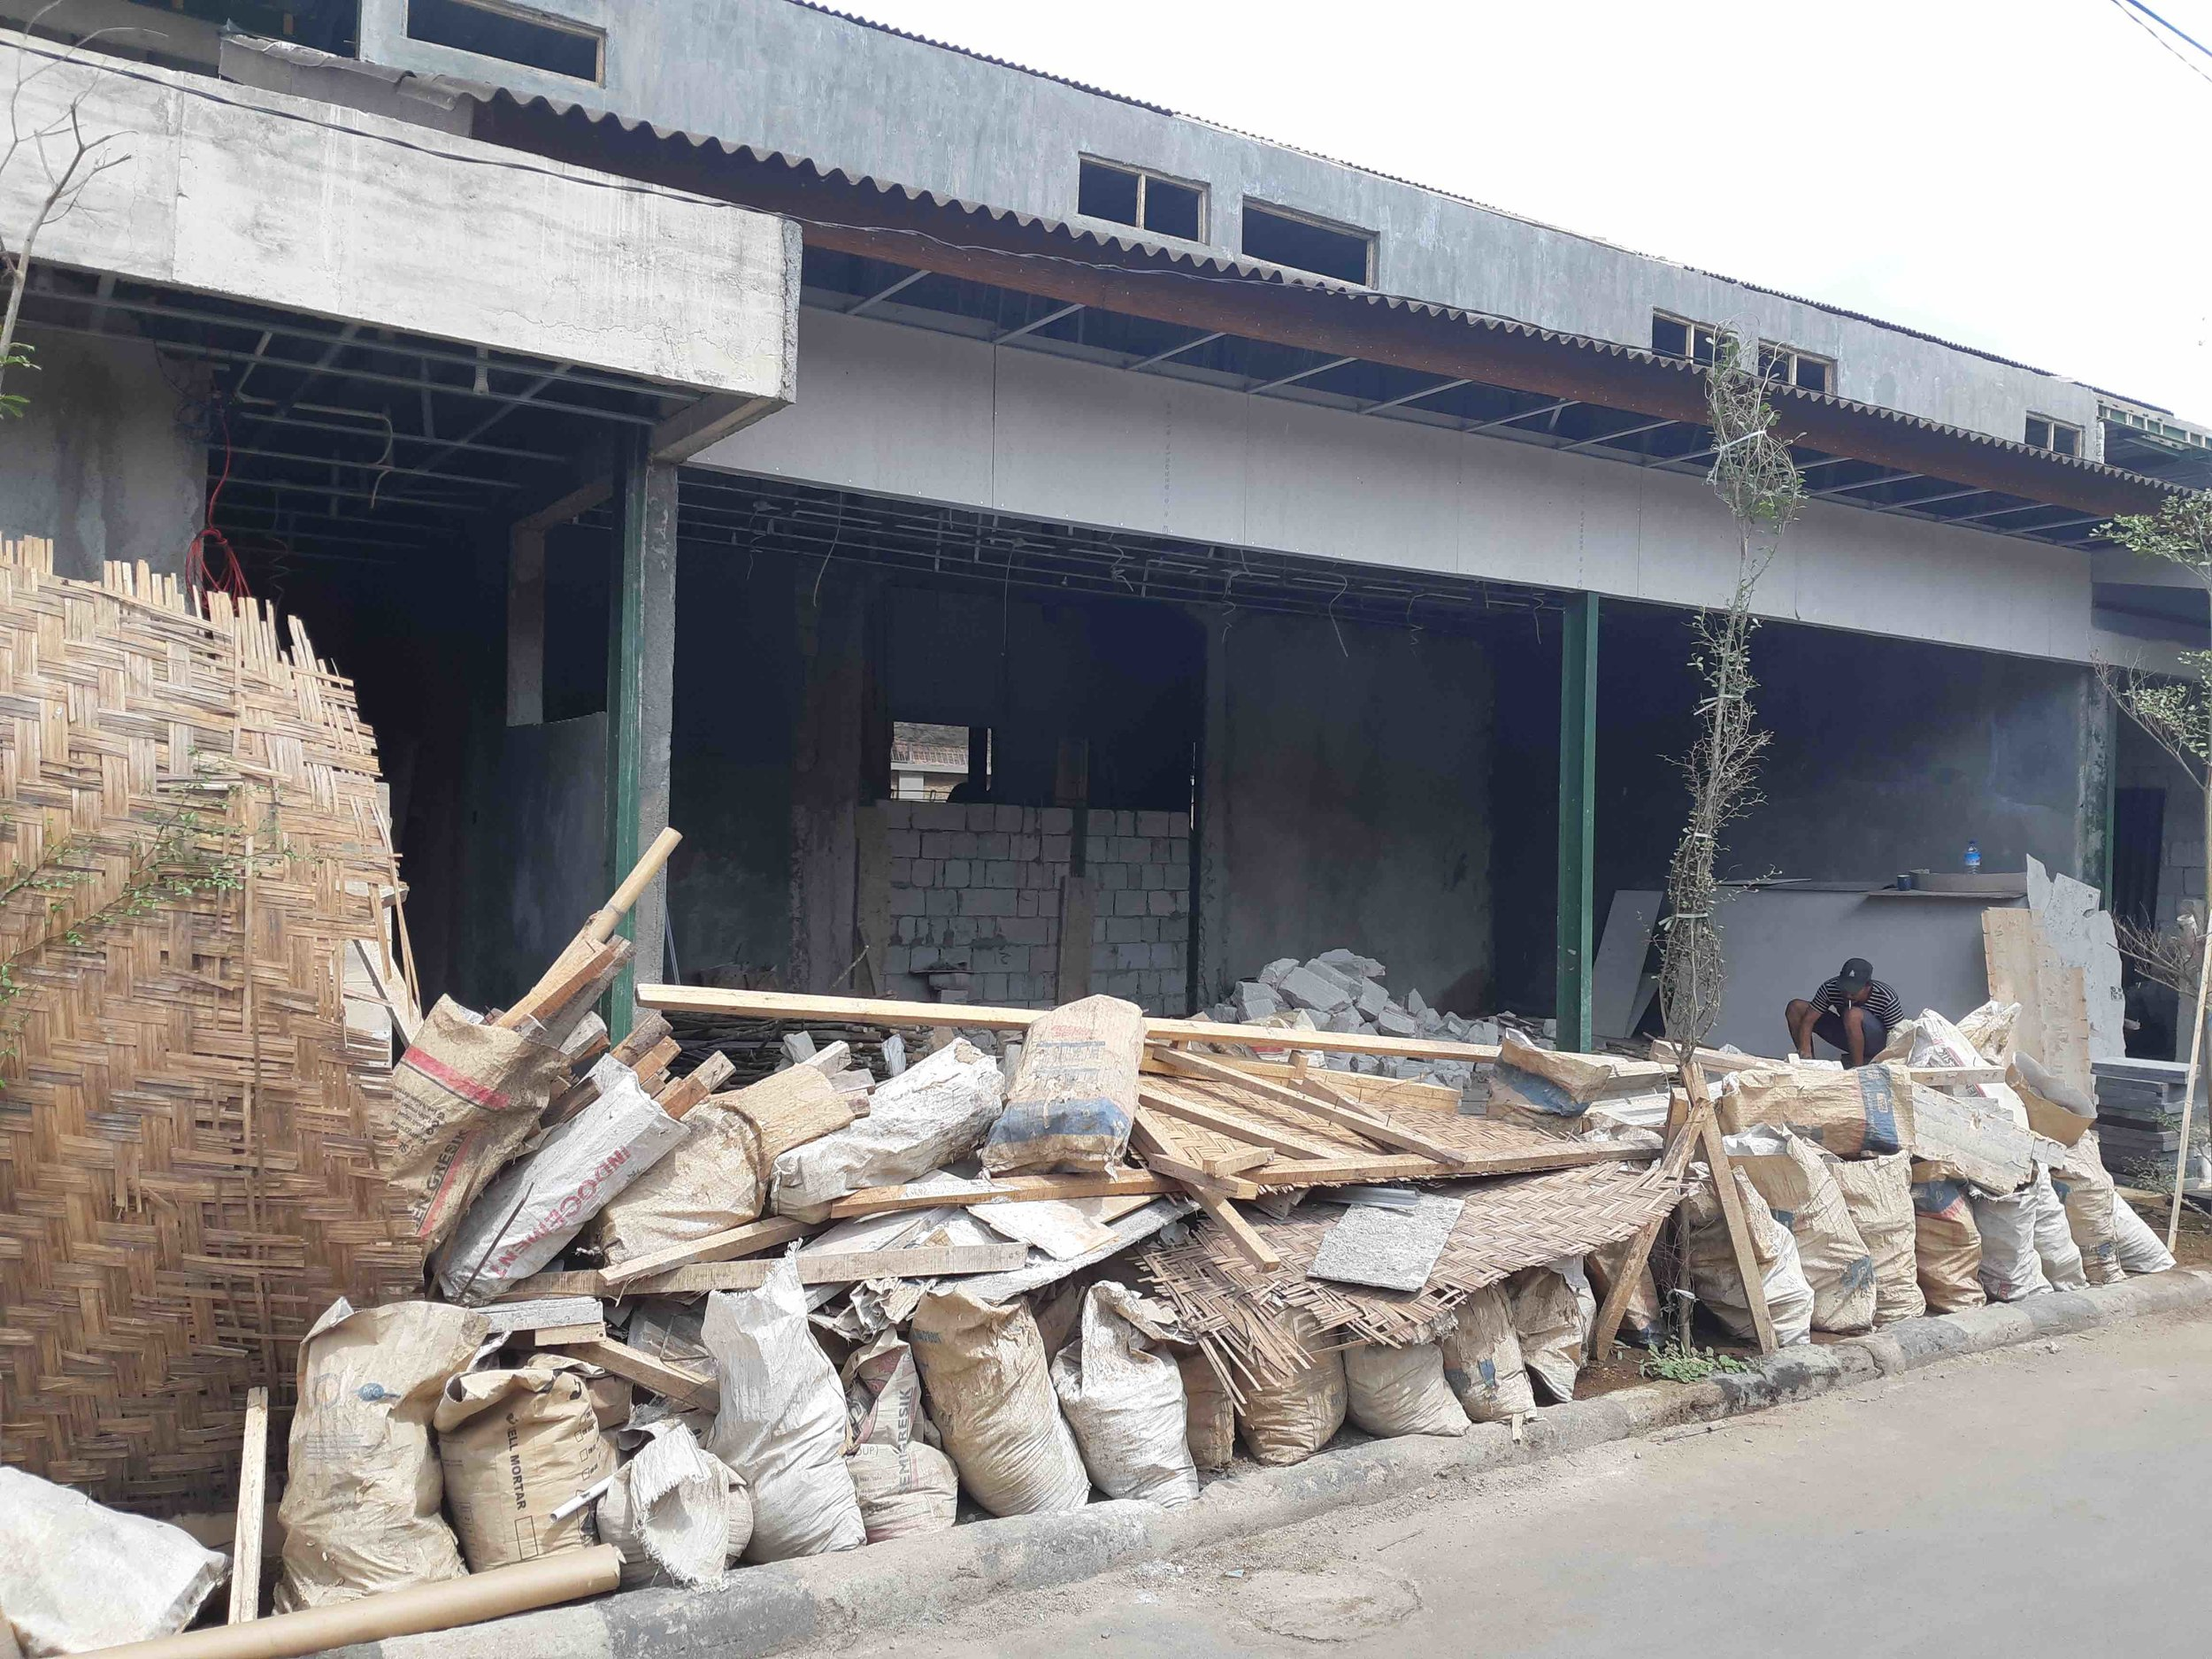 James Buchanan | This owner can afford the materials and man power from Lombok